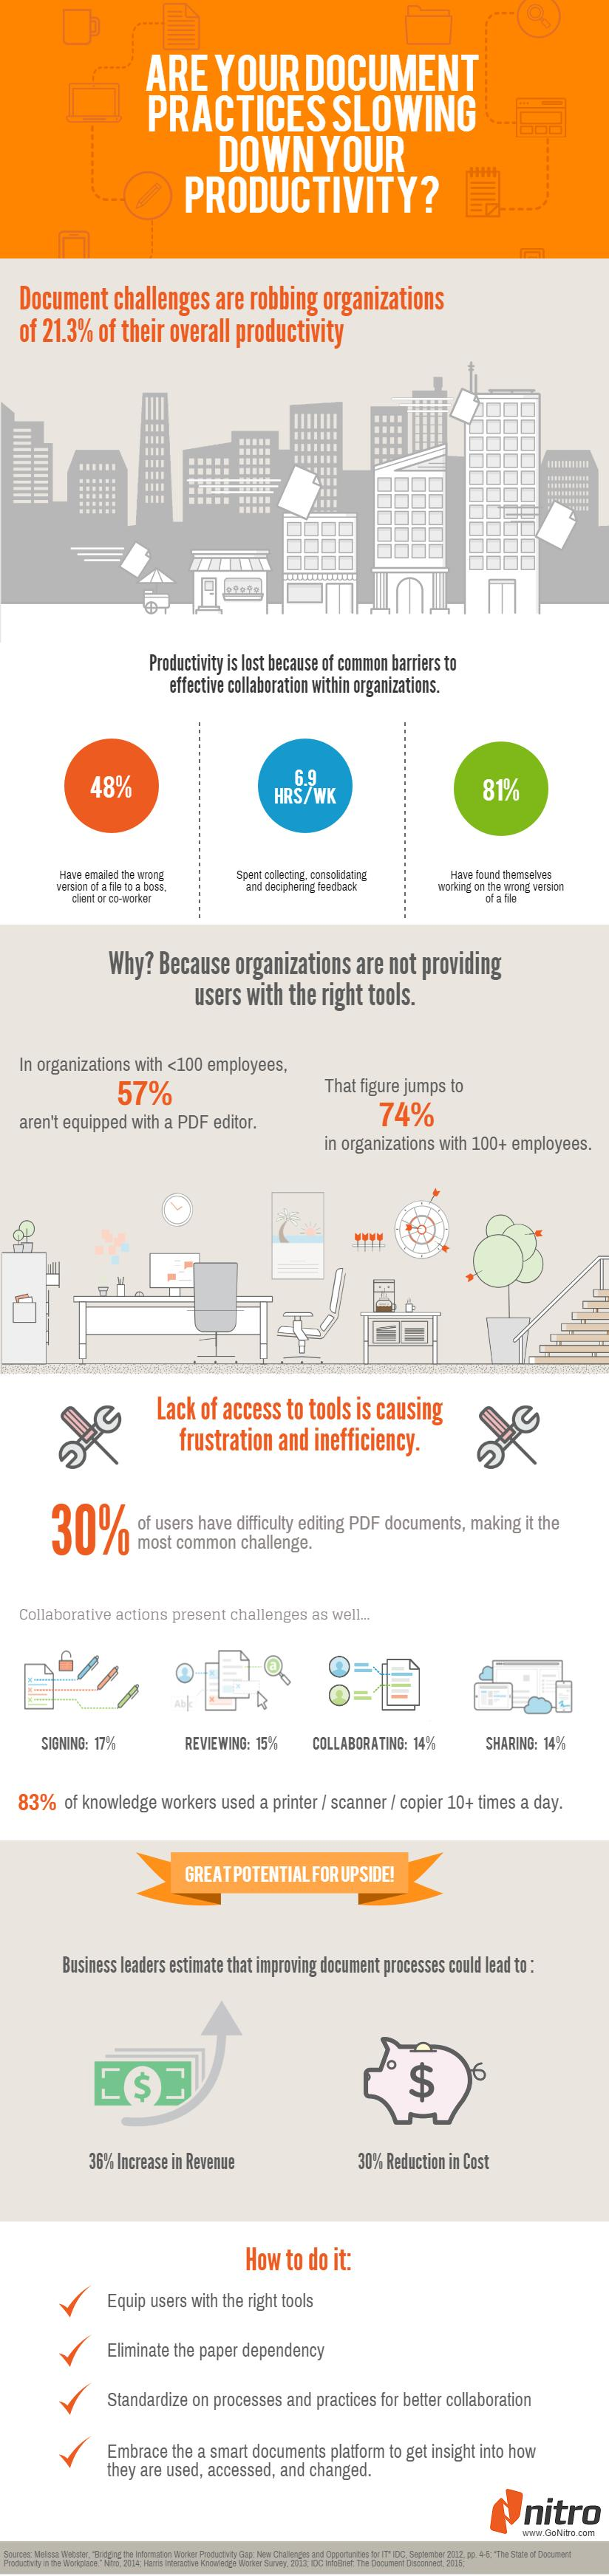 INFOGRAPHIC: Electronic Document Management &amp Productivity